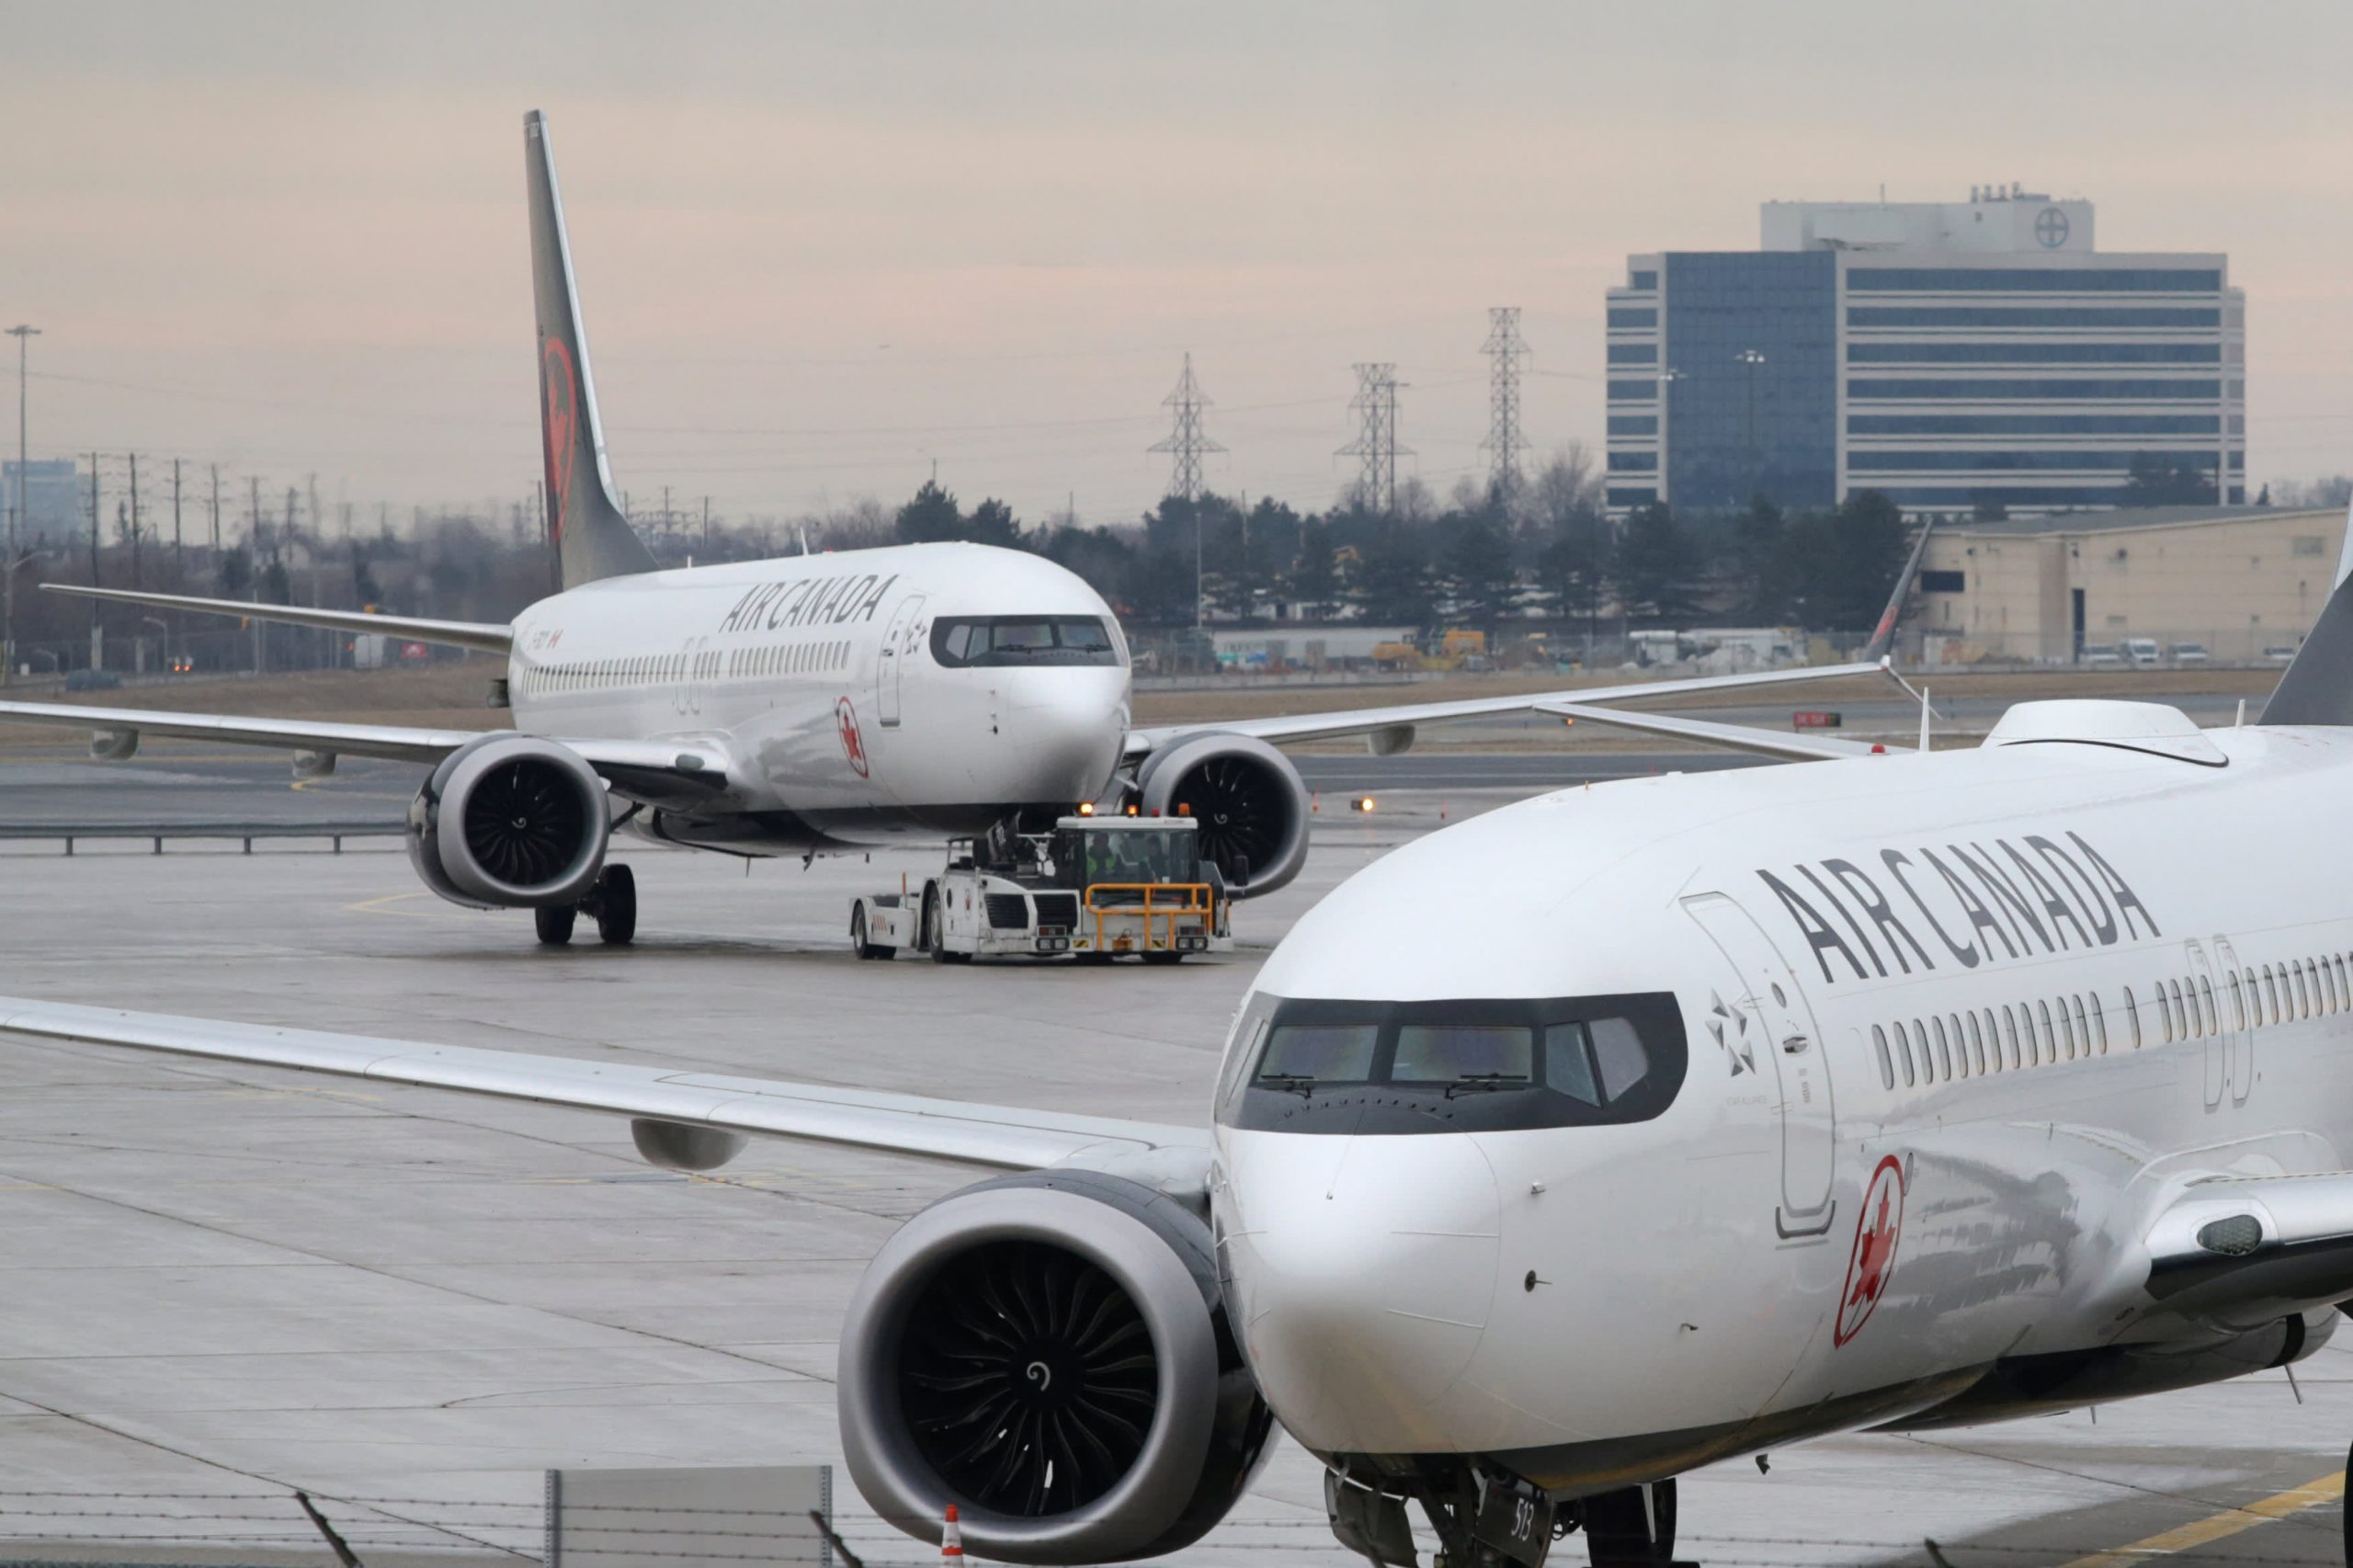 Air Canada Boeing 737 Max ferry flight diverts after engine issue